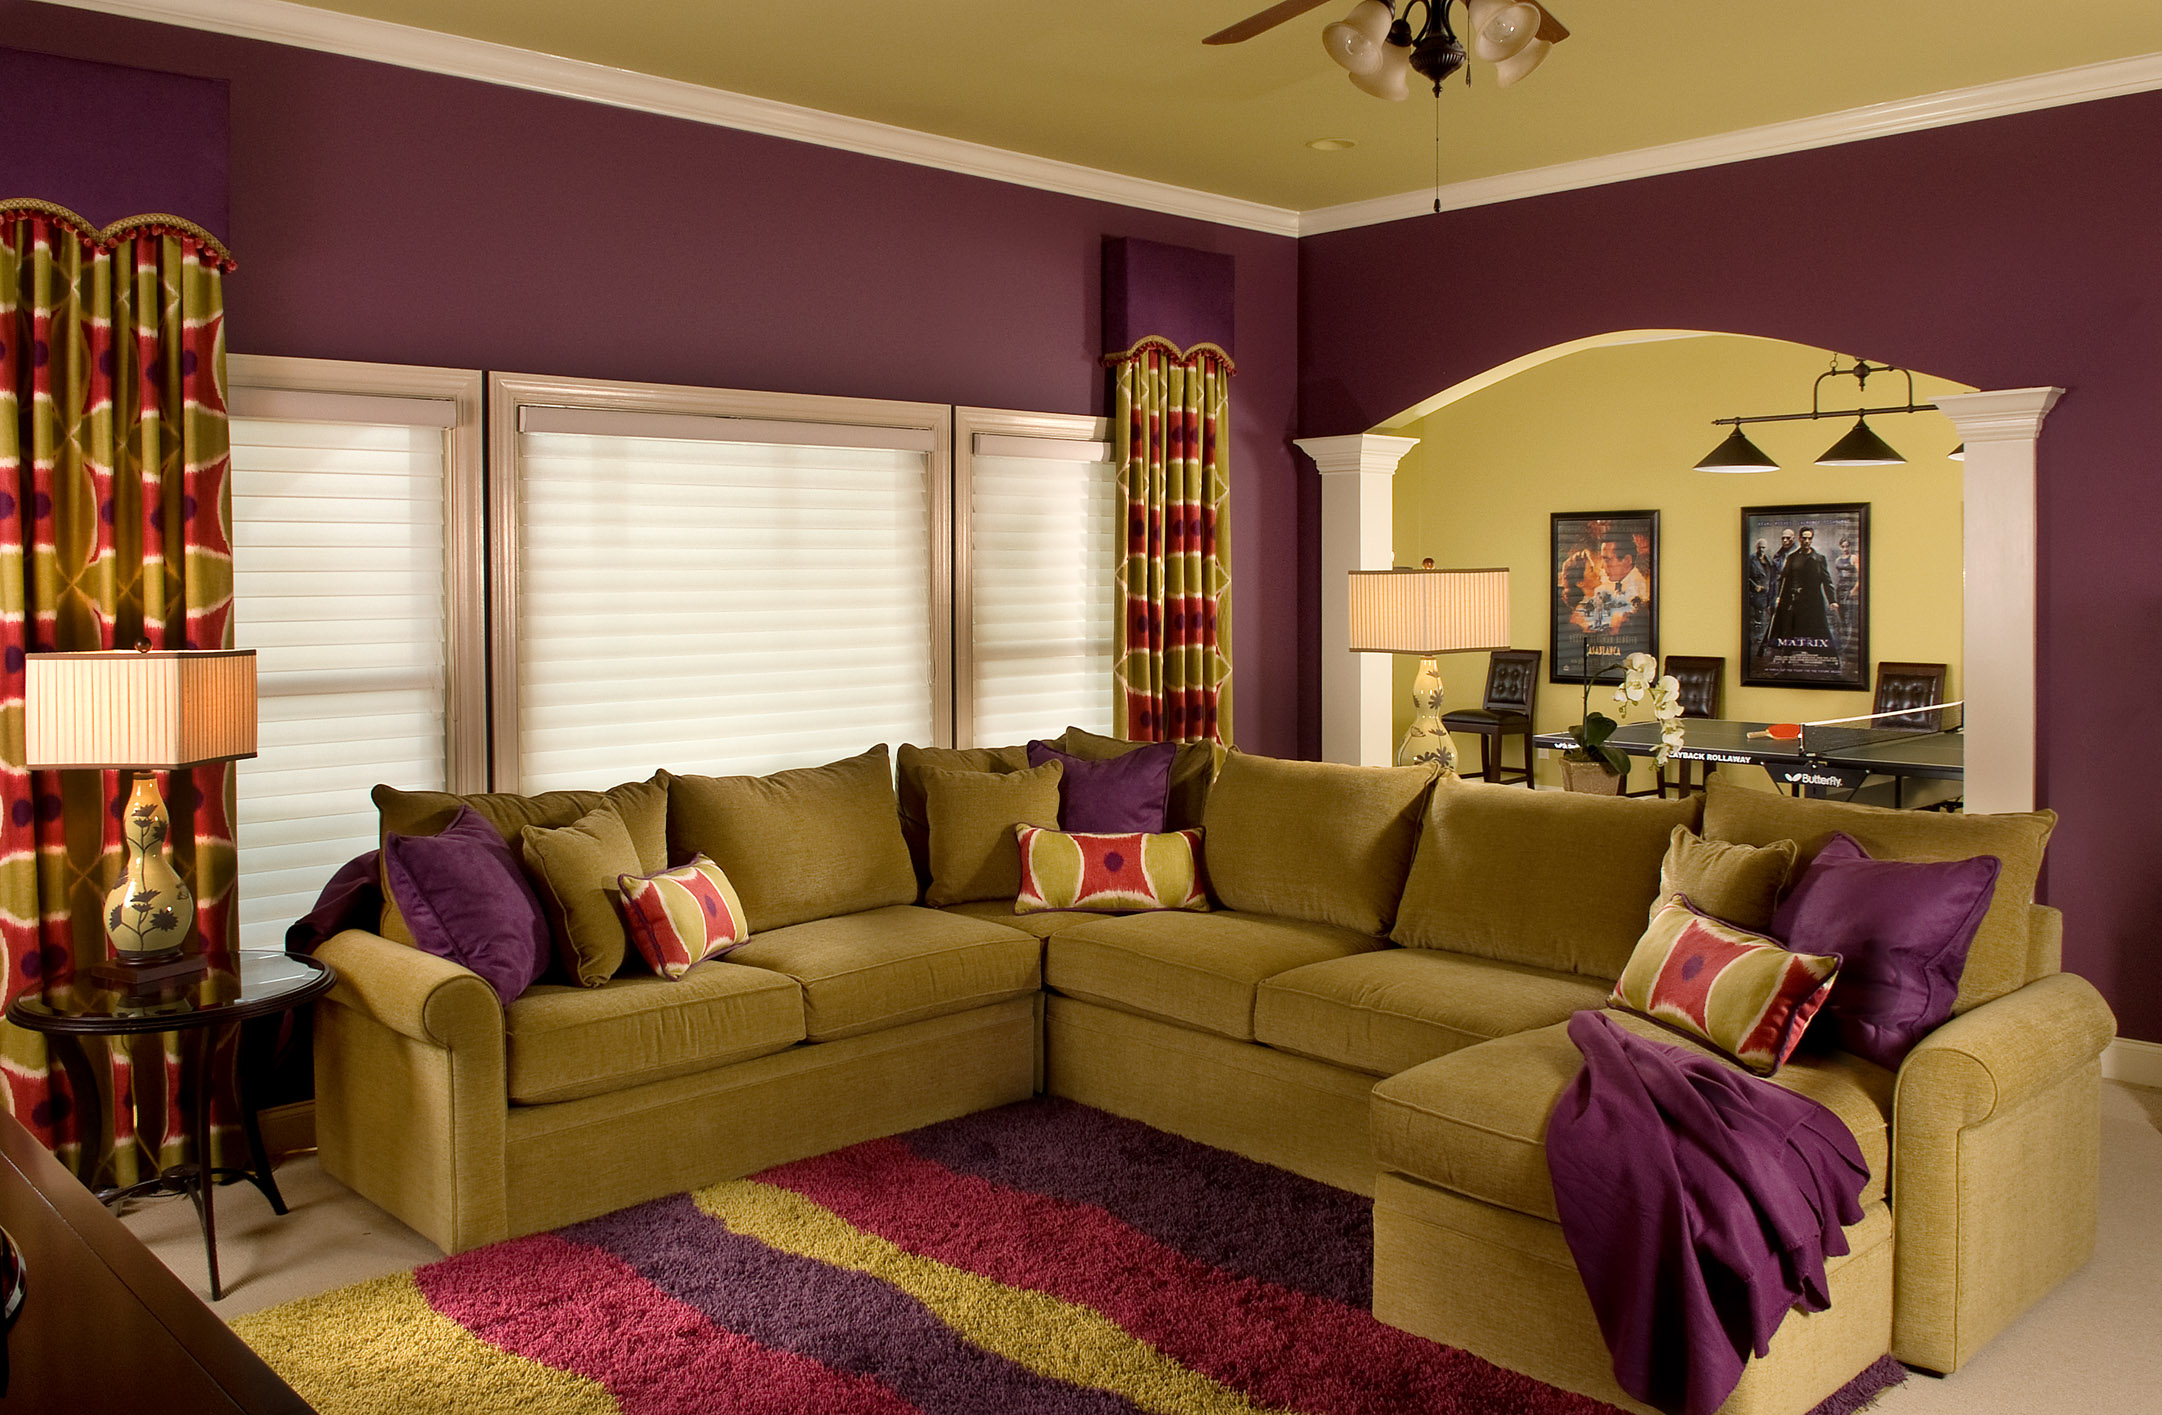 Outstanding Living Room Wall Color Schemes 2162 x 1415 · 645 kB · jpeg